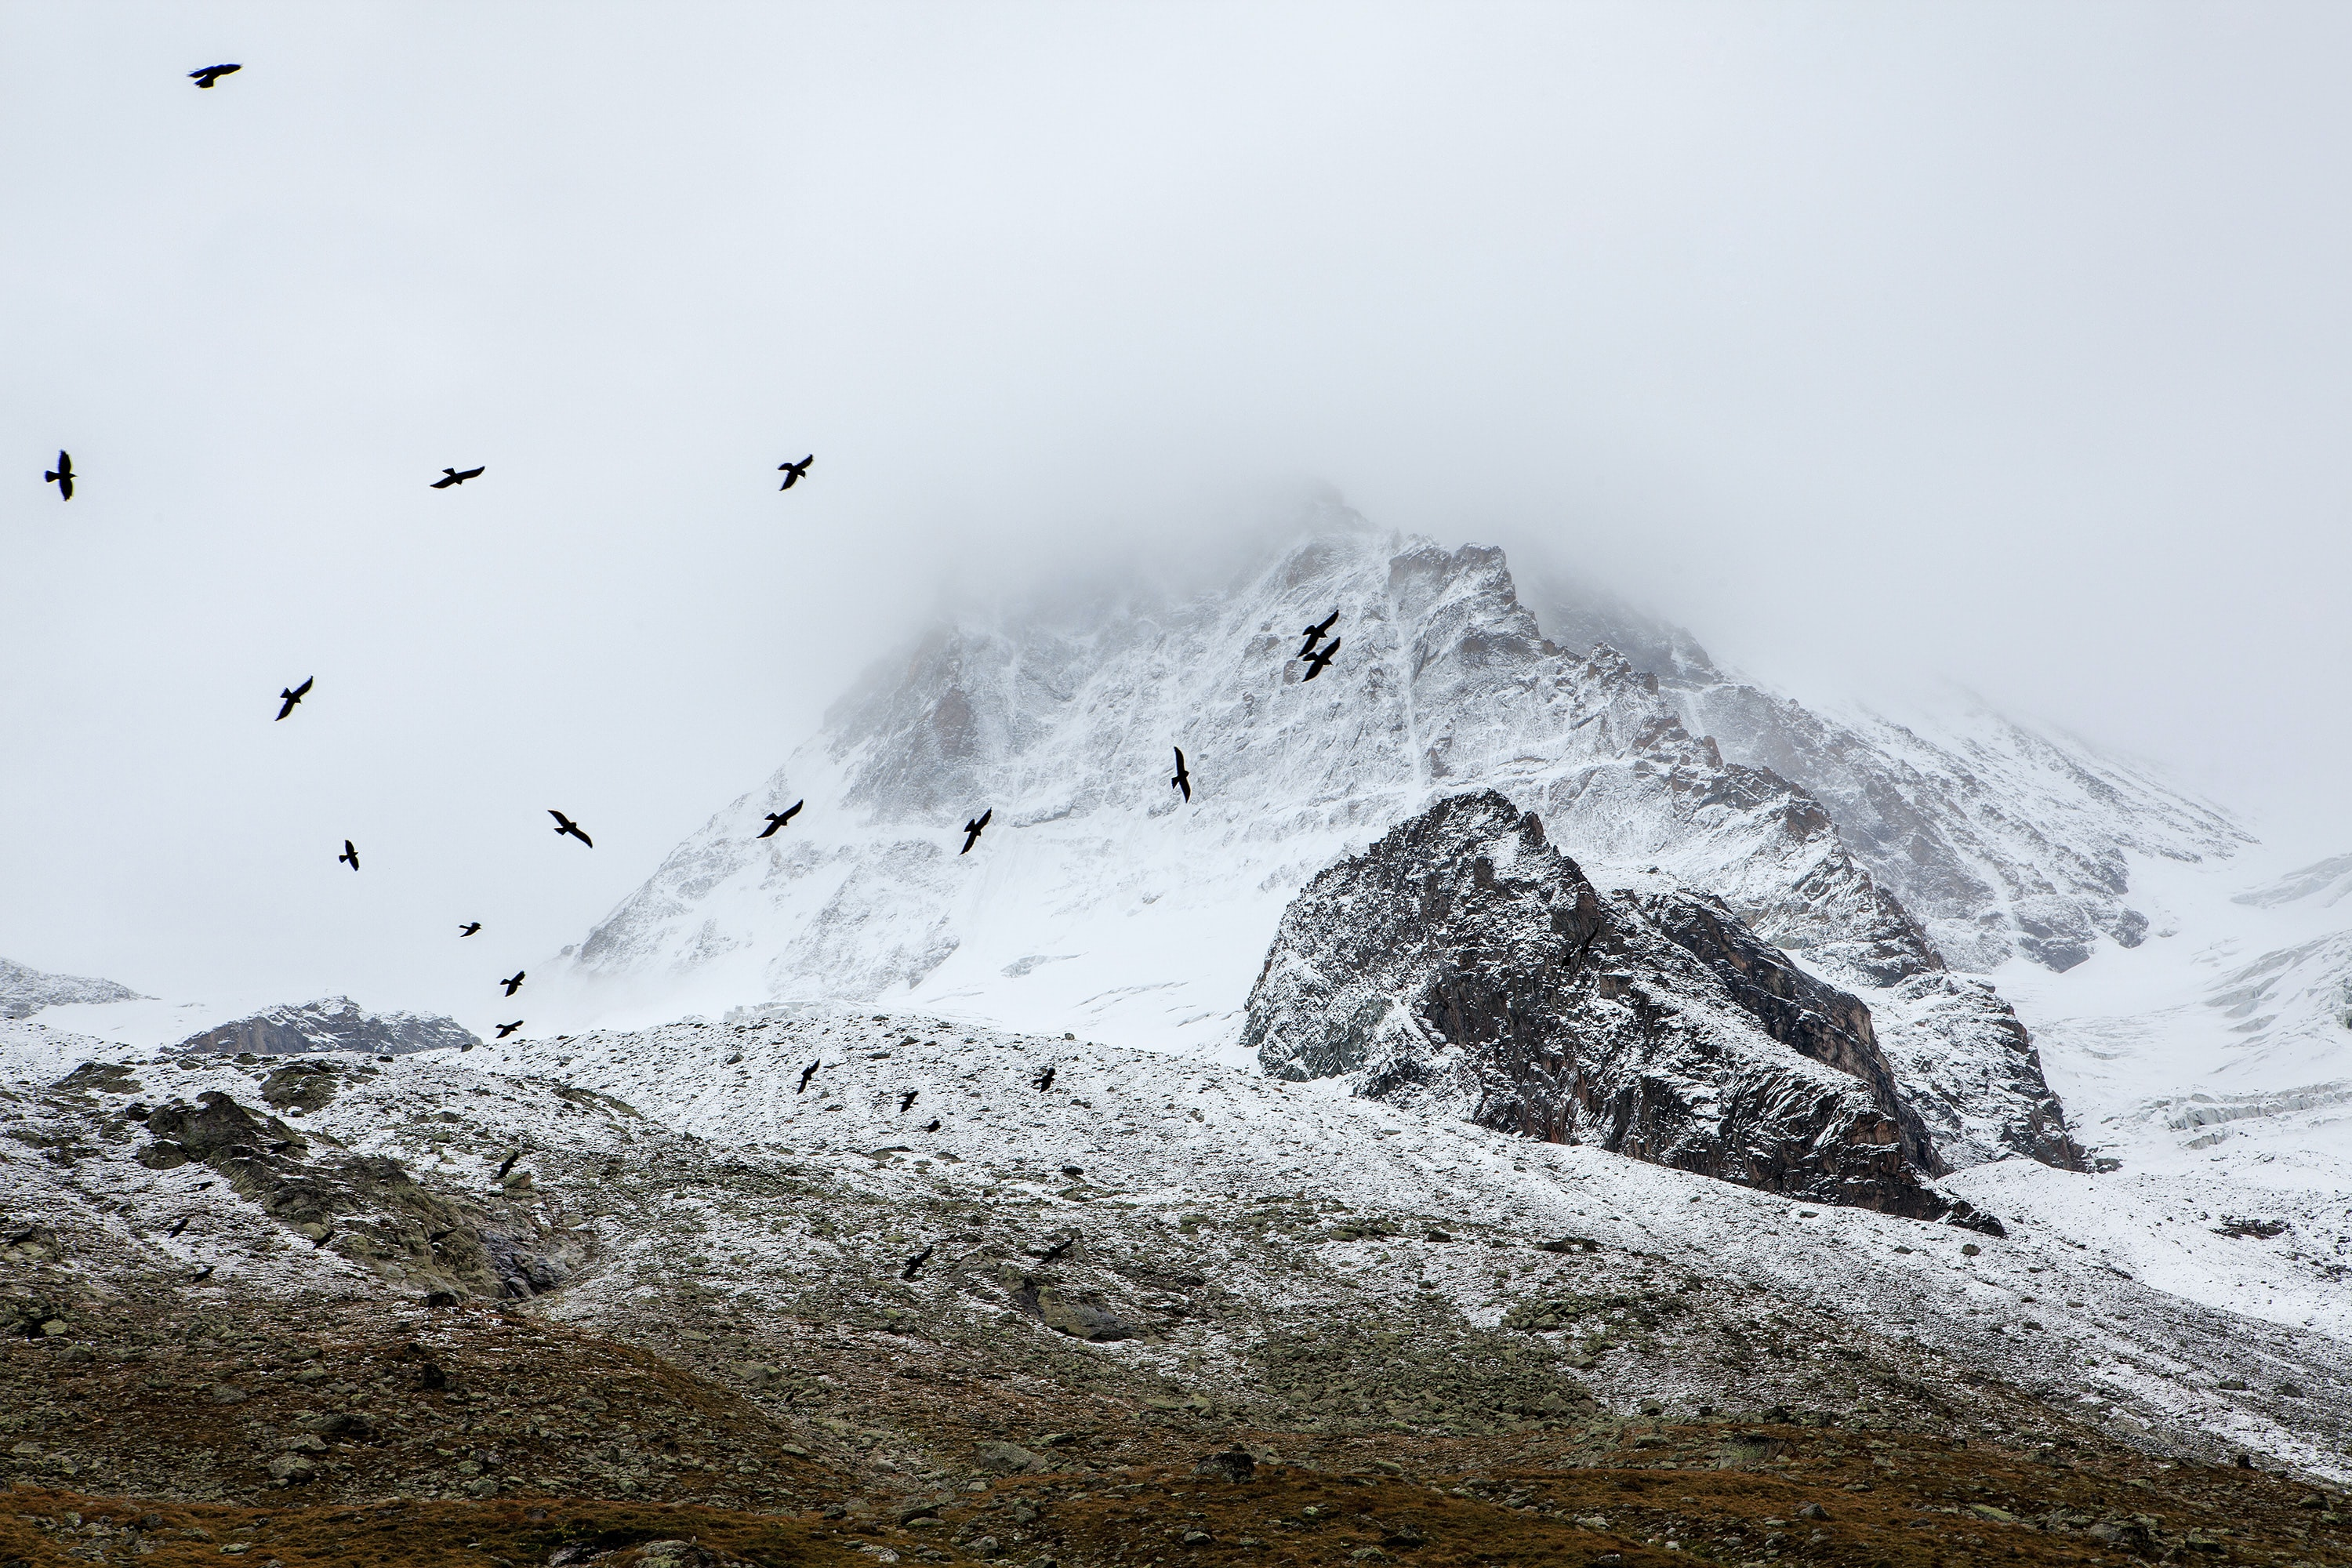 birds flying in the sky above snow covered mountain